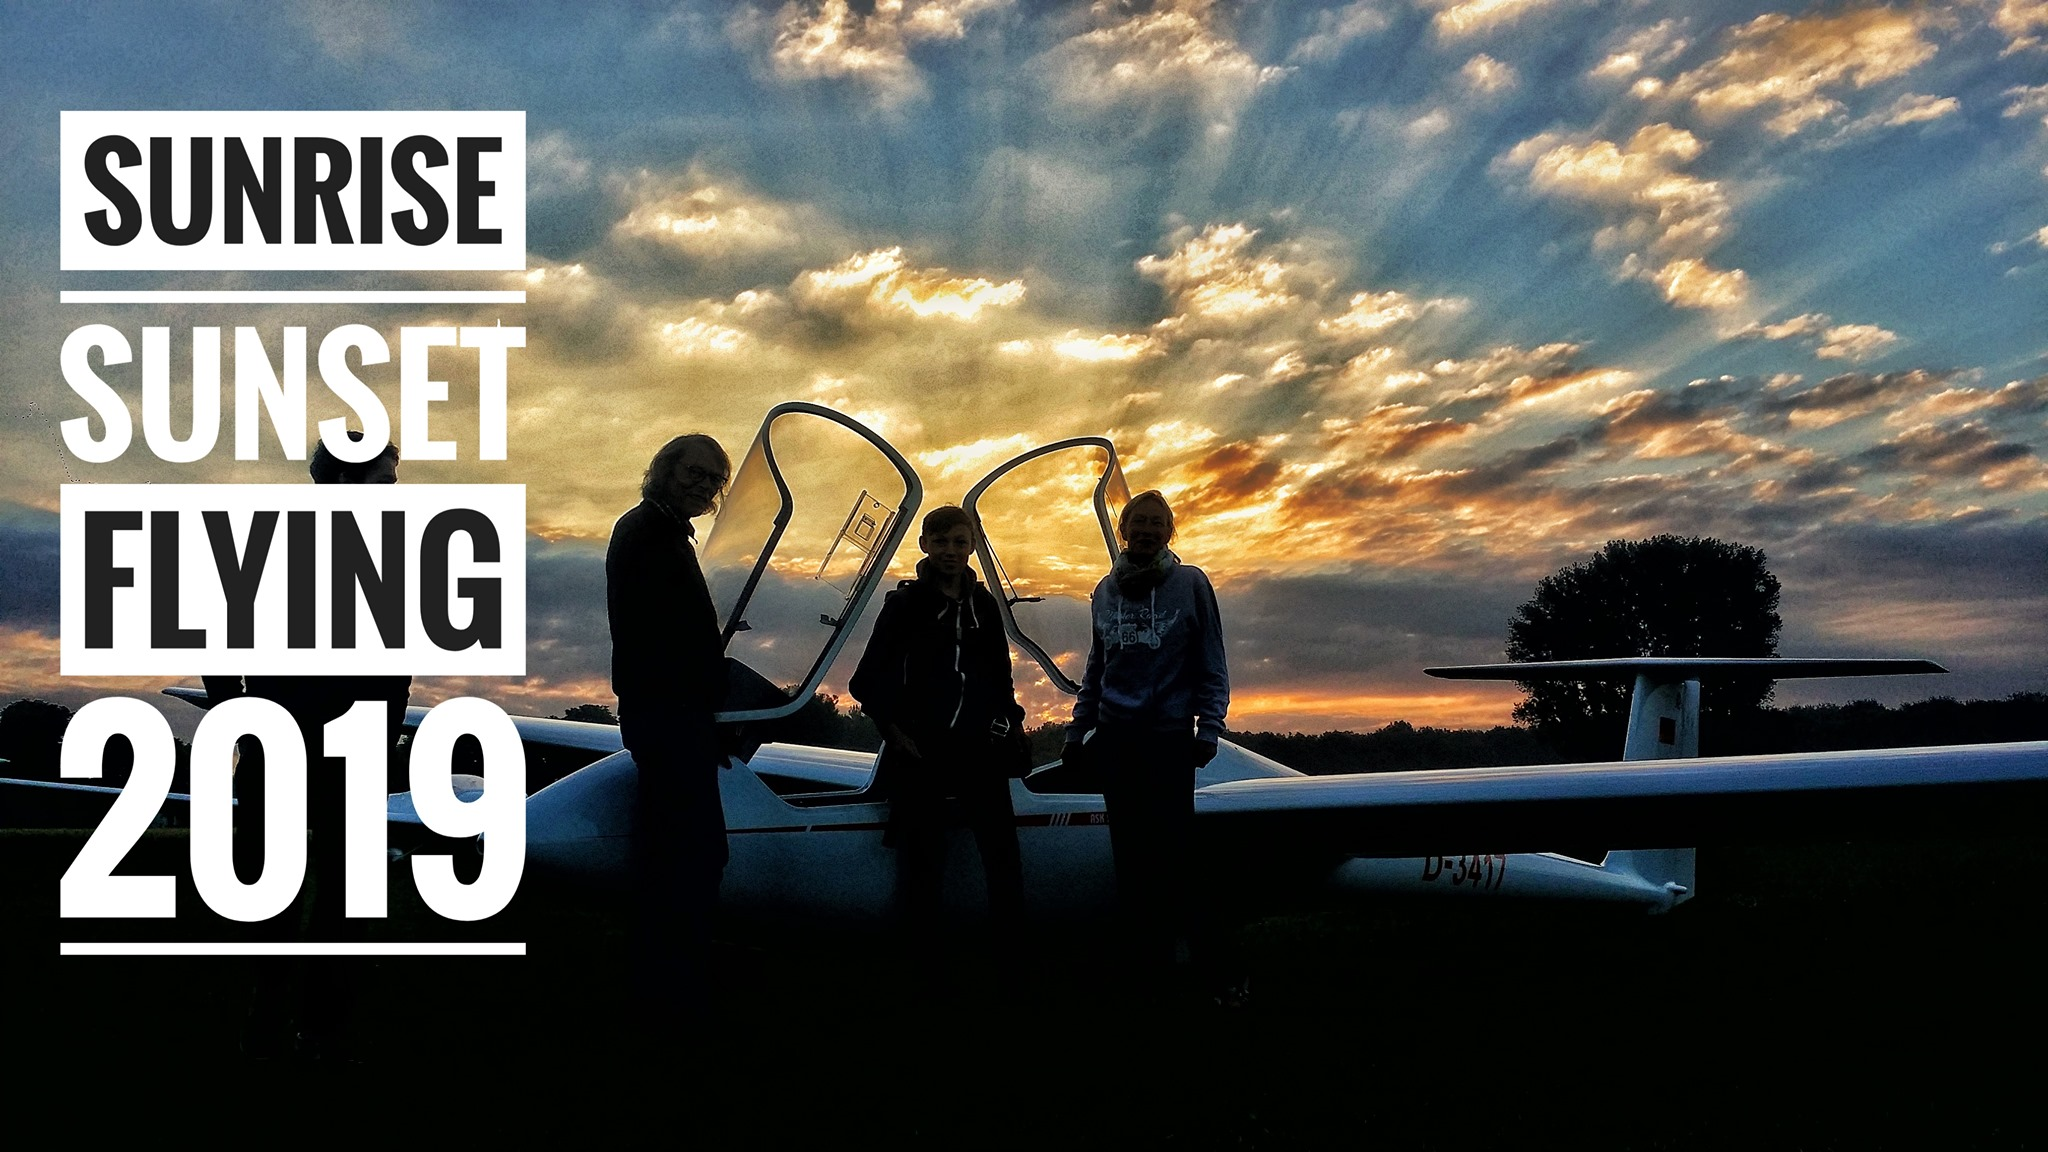 Sunrise Sunset Flying 2019